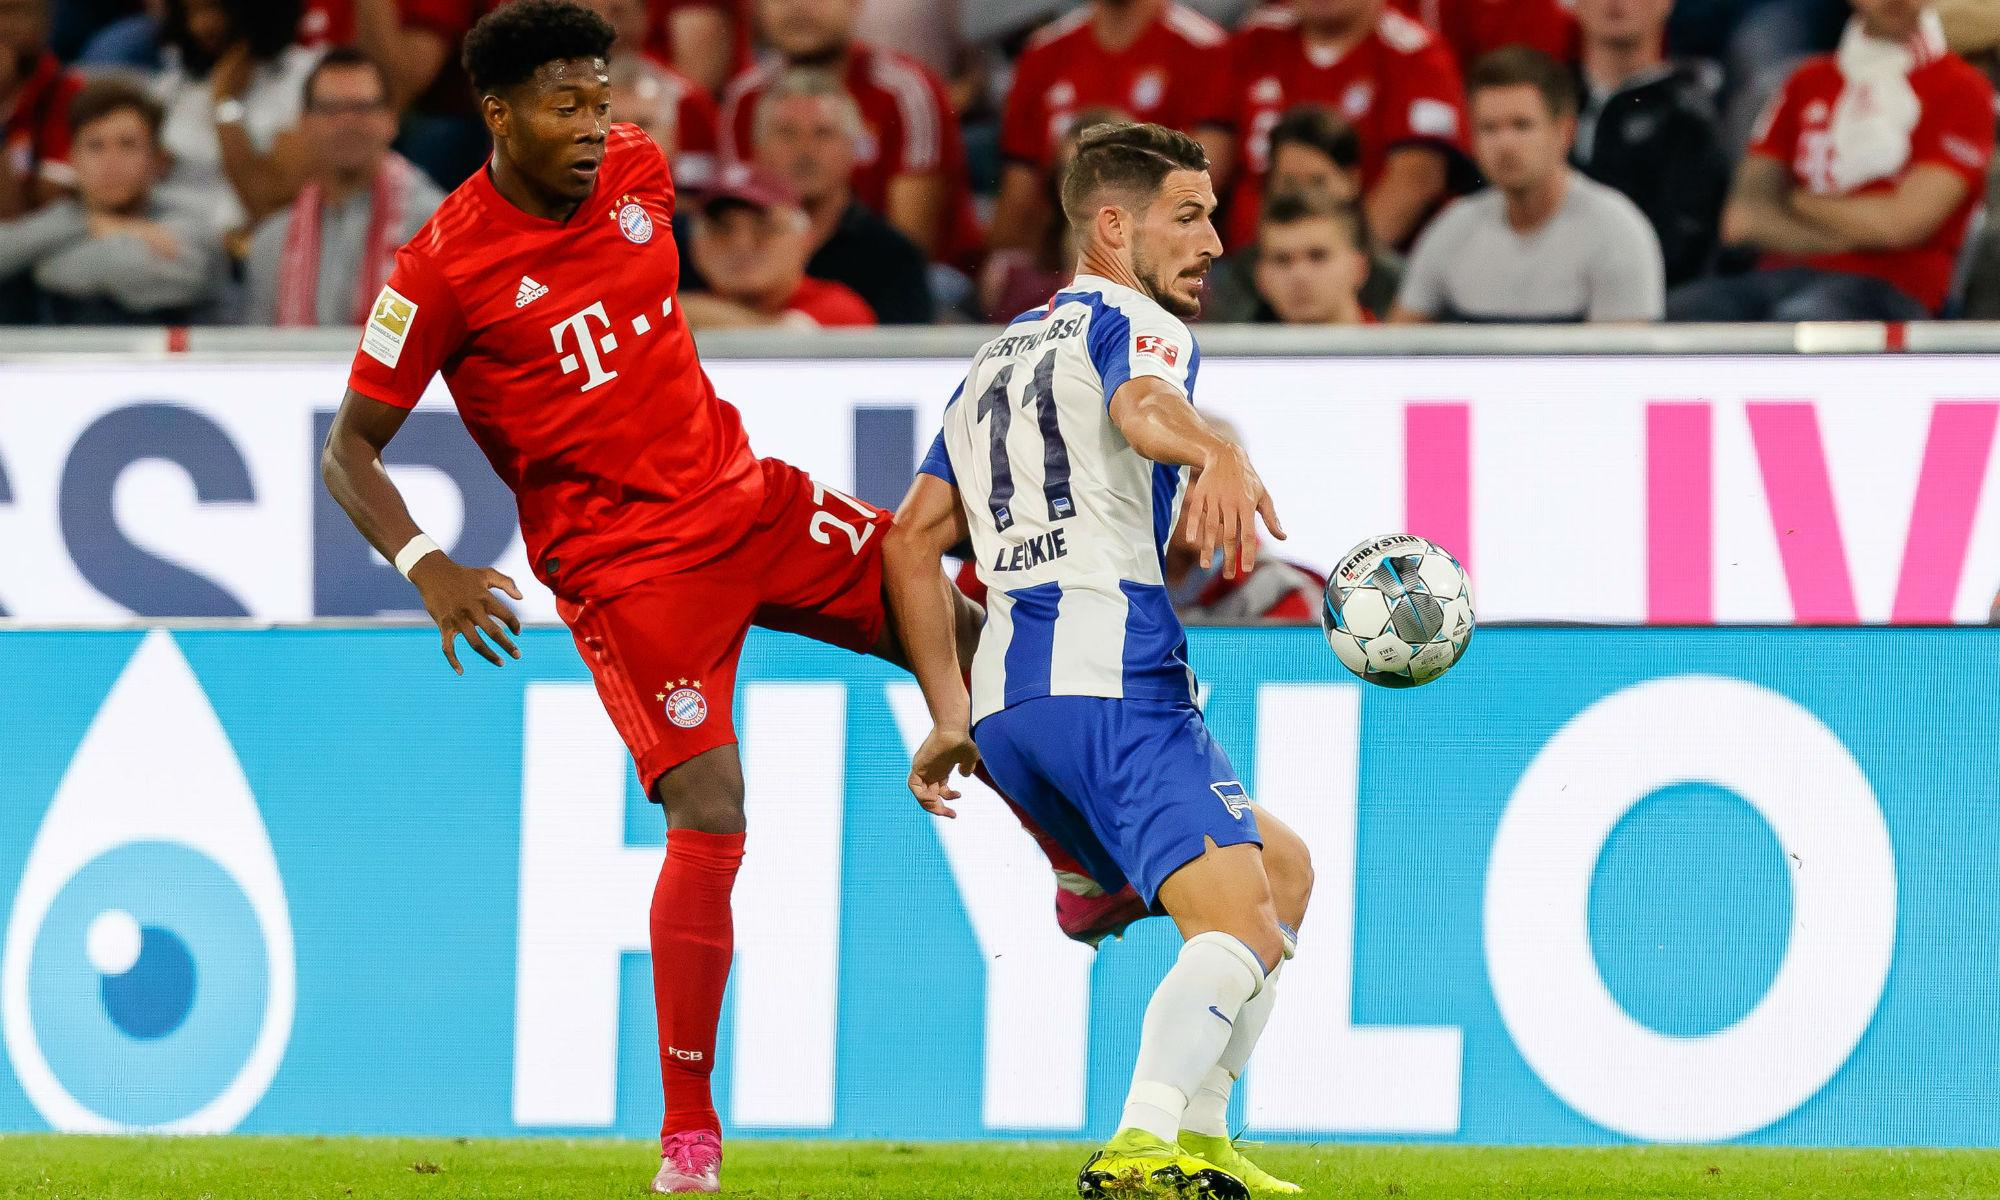 Mathew Leckie faces Bayern Munich